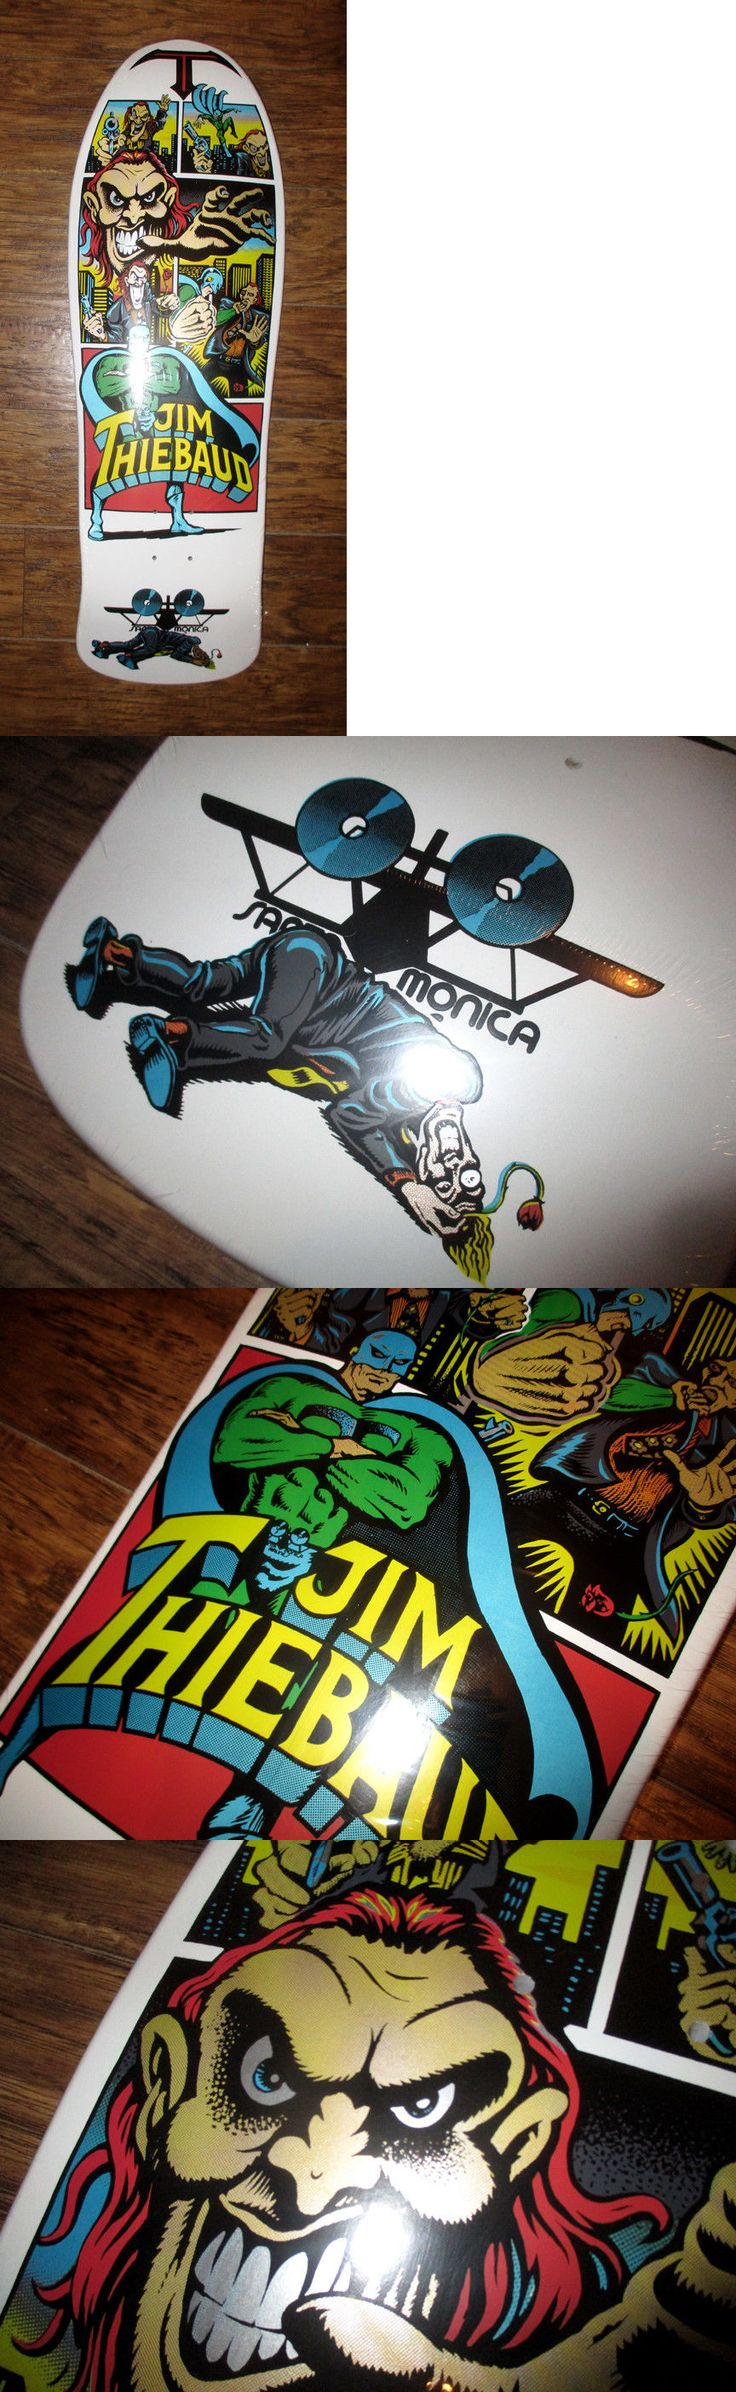 Stickers and Decals 47357: Santa Cruz Skateboard Jim Thiebaud Joker Old School Deck 10 White New Reissue ! -> BUY IT NOW ONLY: $59.99 on eBay!